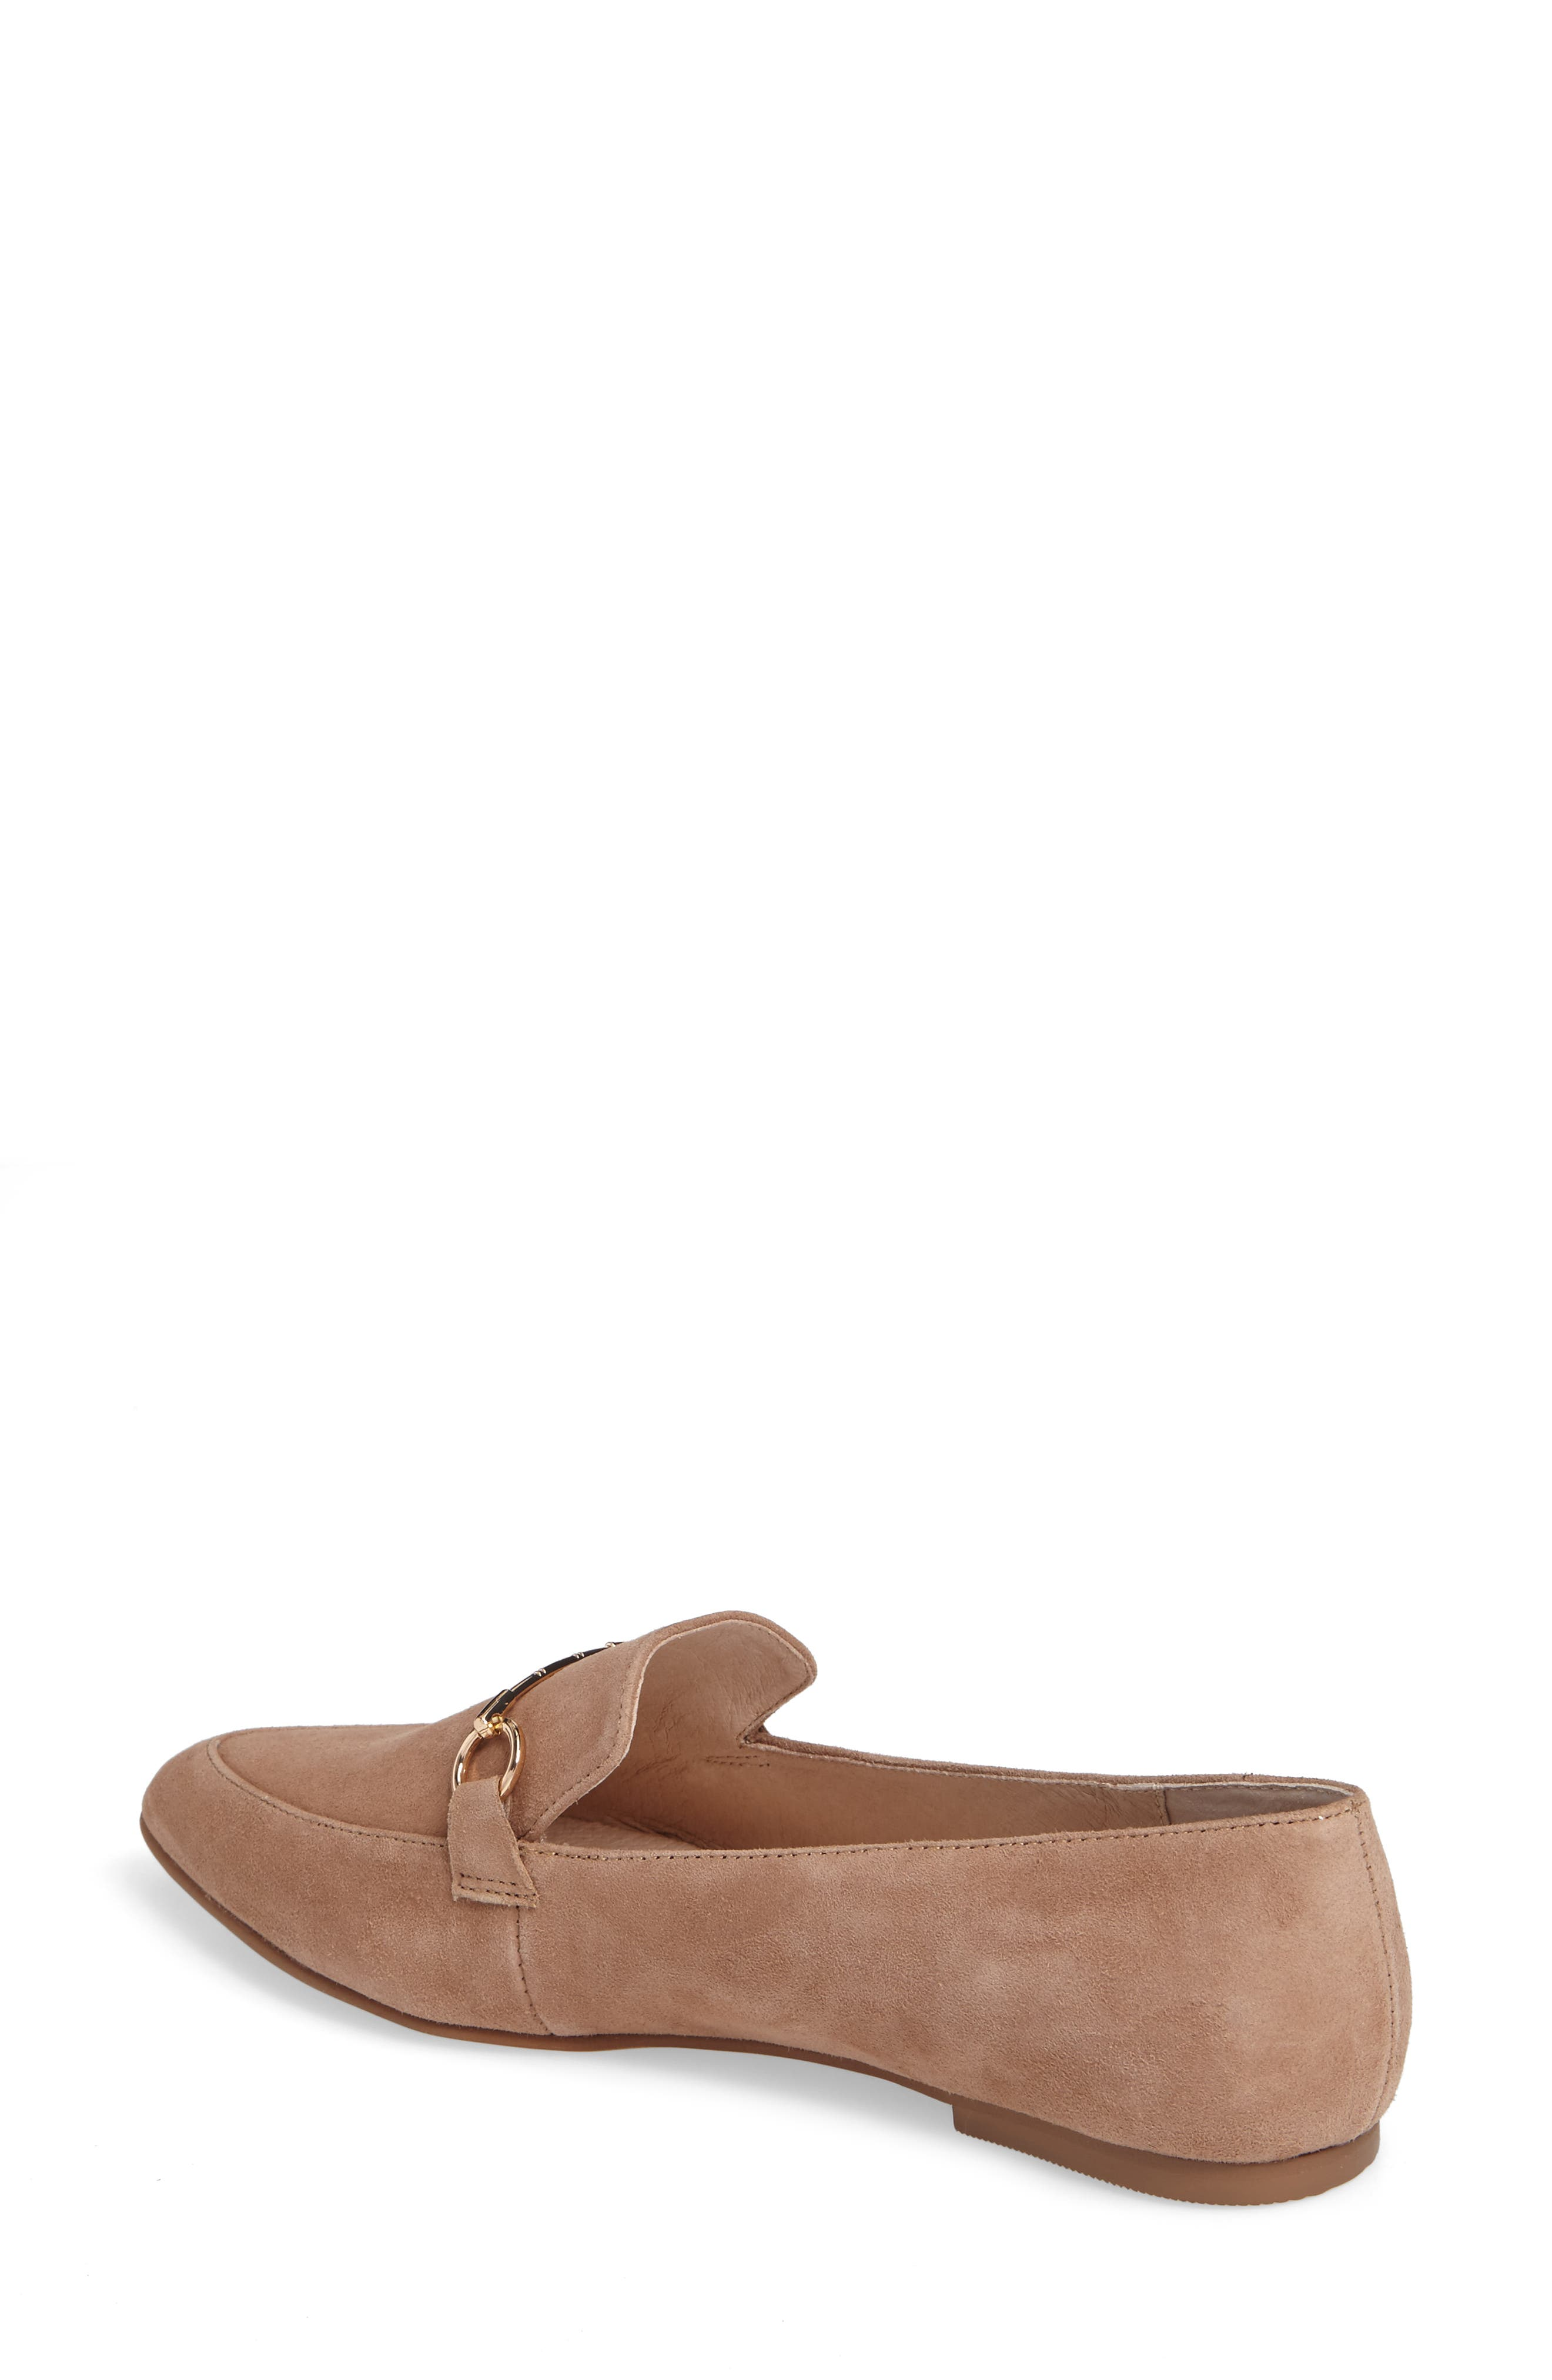 Cambrie Loafer Flat,                             Alternate thumbnail 2, color,                             Clay Suede